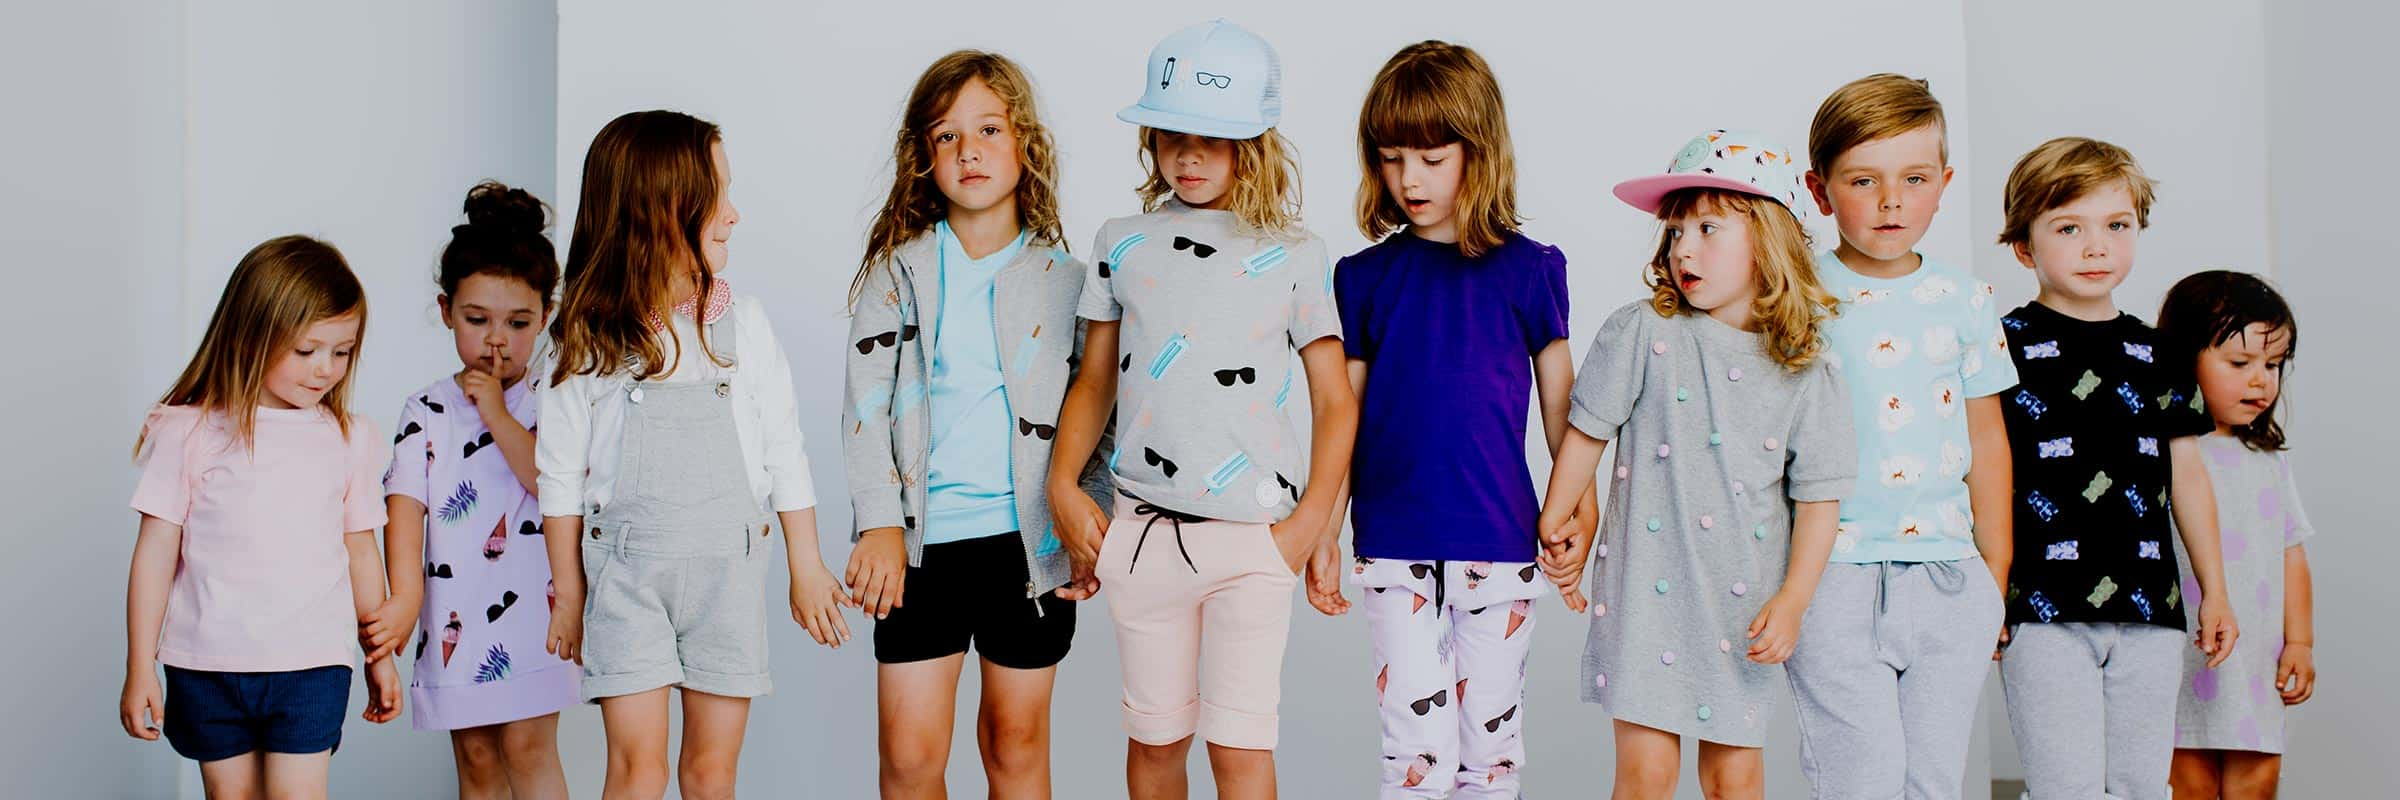 Kids' Fashion for Back to School: First-Day Looks They'll Love